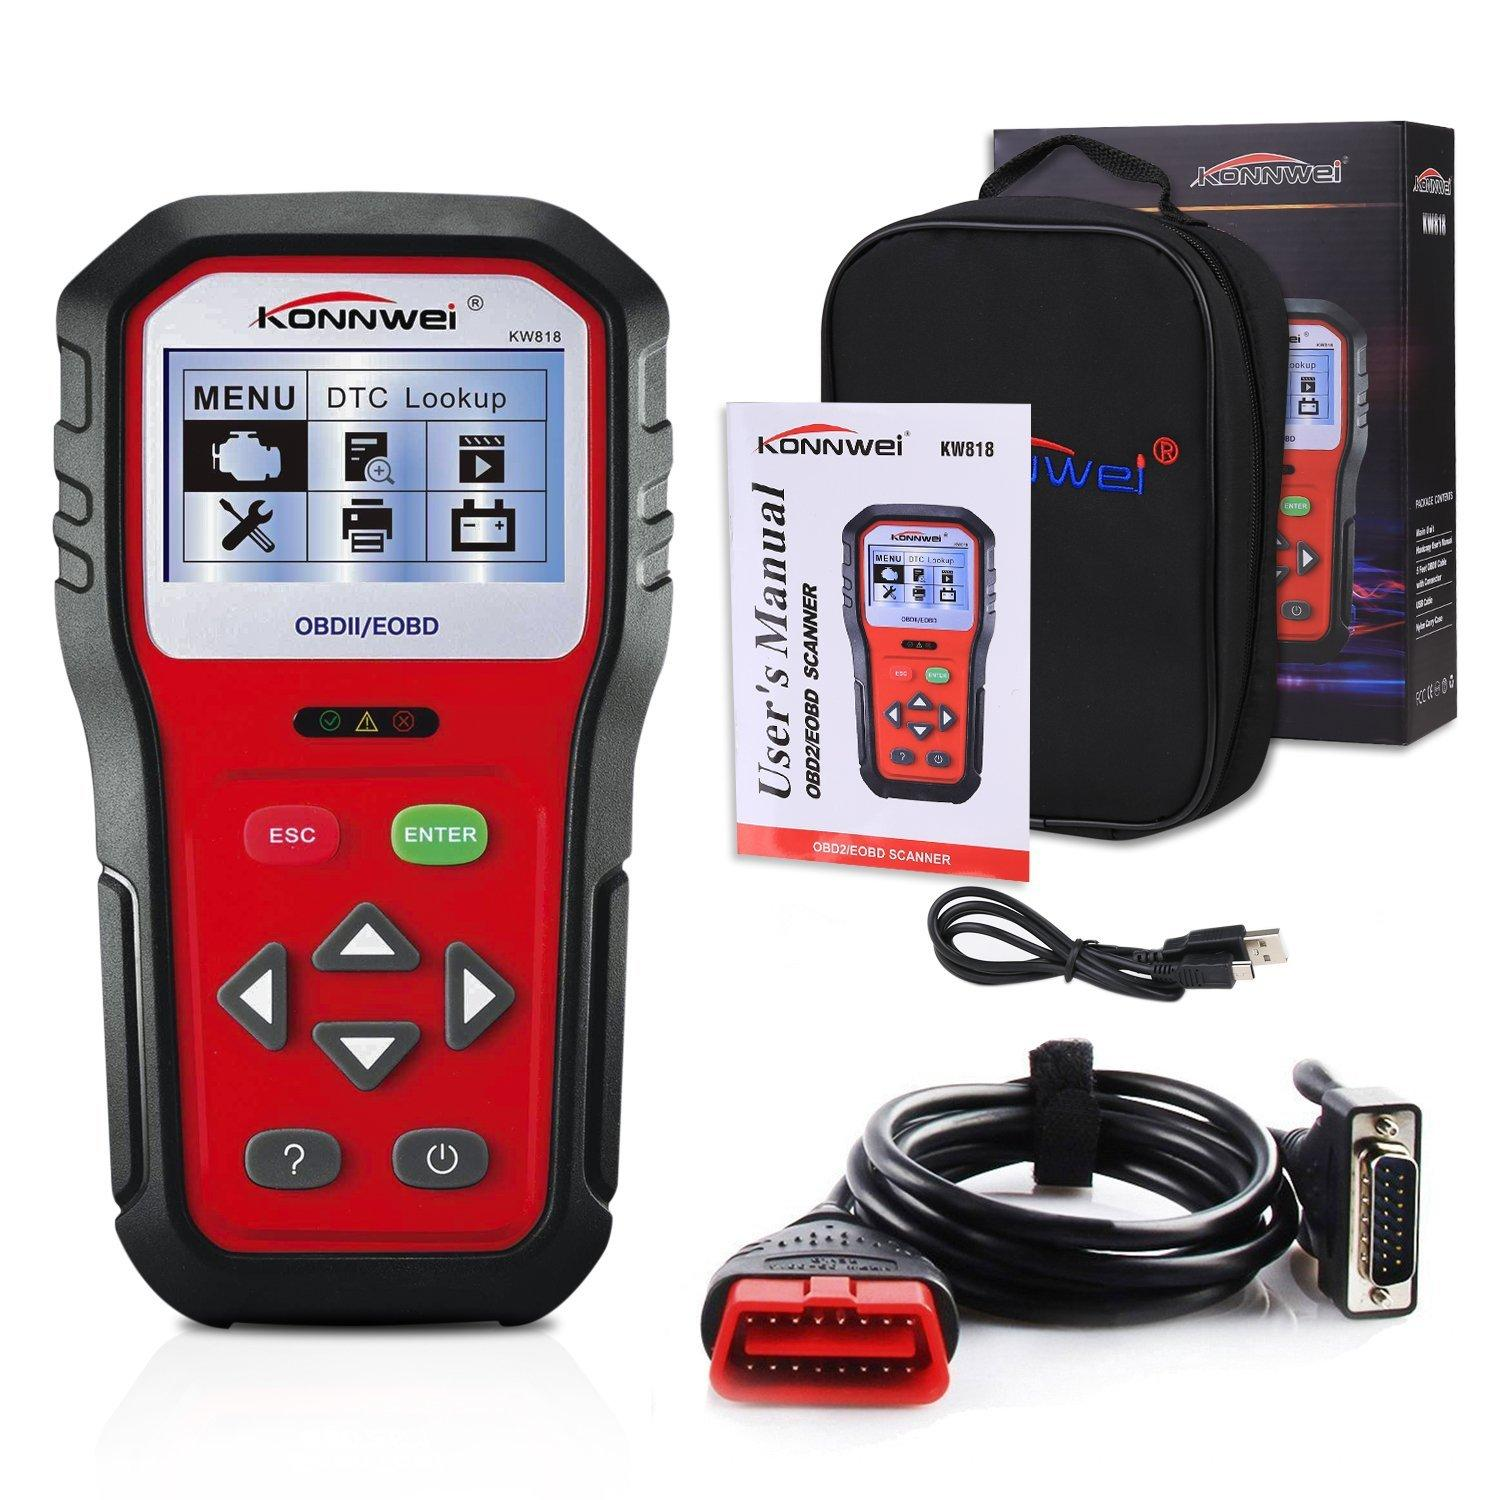 2019 OBD2 Car Diagnostic Scanner,KW818 Universal Car Code Reader Vehicle  Diagnostic Tool,Check Engine Light Code Reader For All Cars Since 1996 From